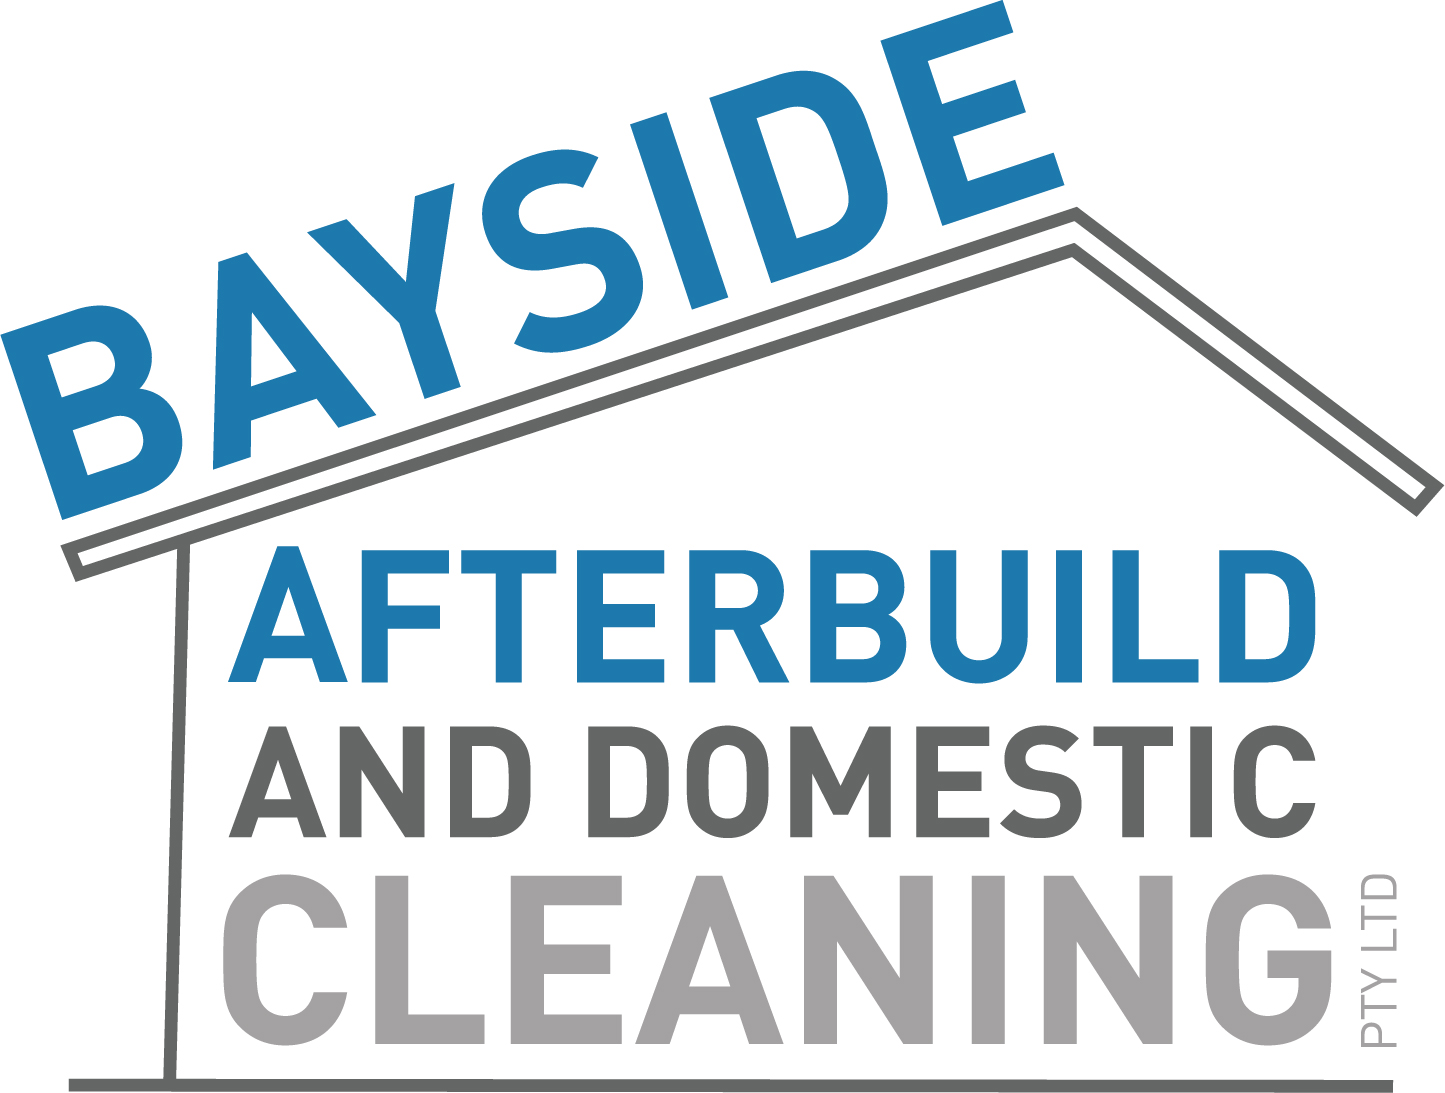 Bayside Afterbuild & Domestic Cleaning